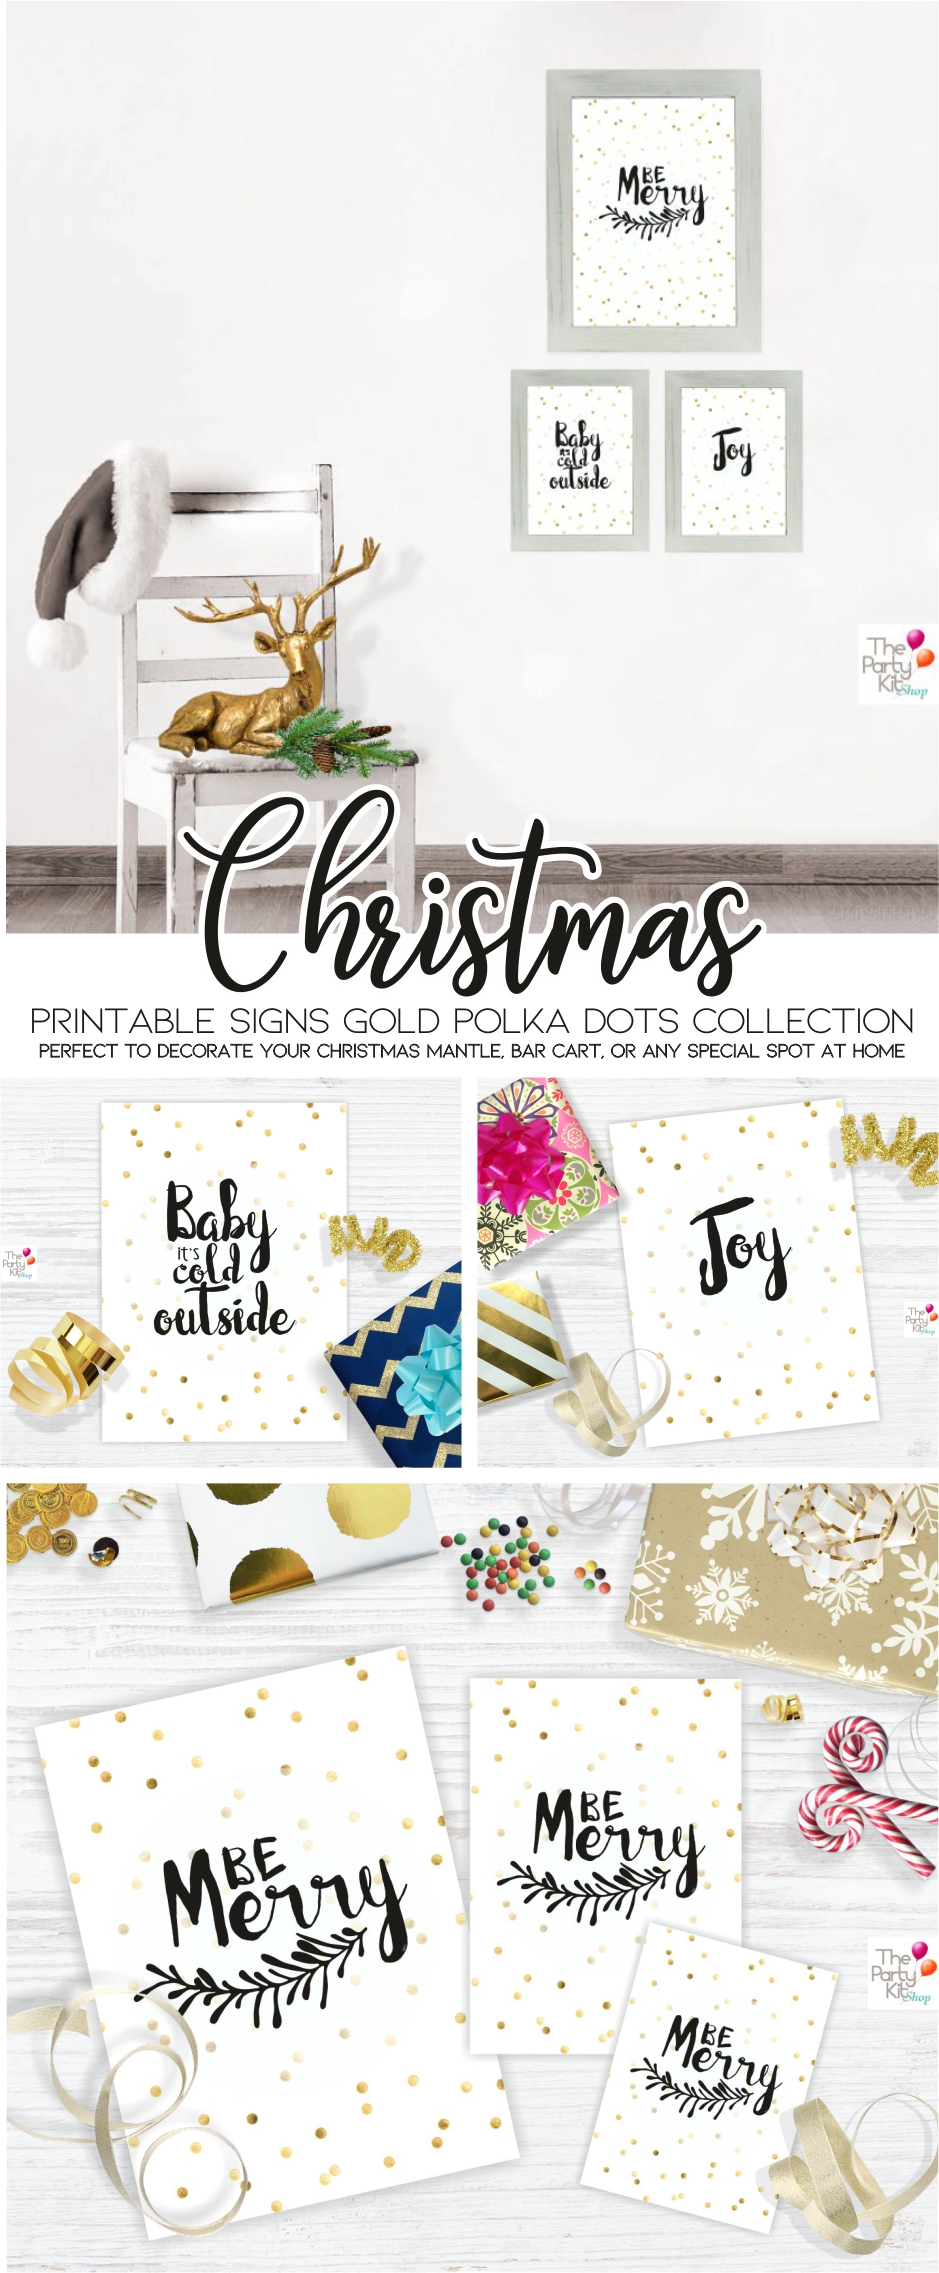 Christmas gold PolkaDots printable Signs